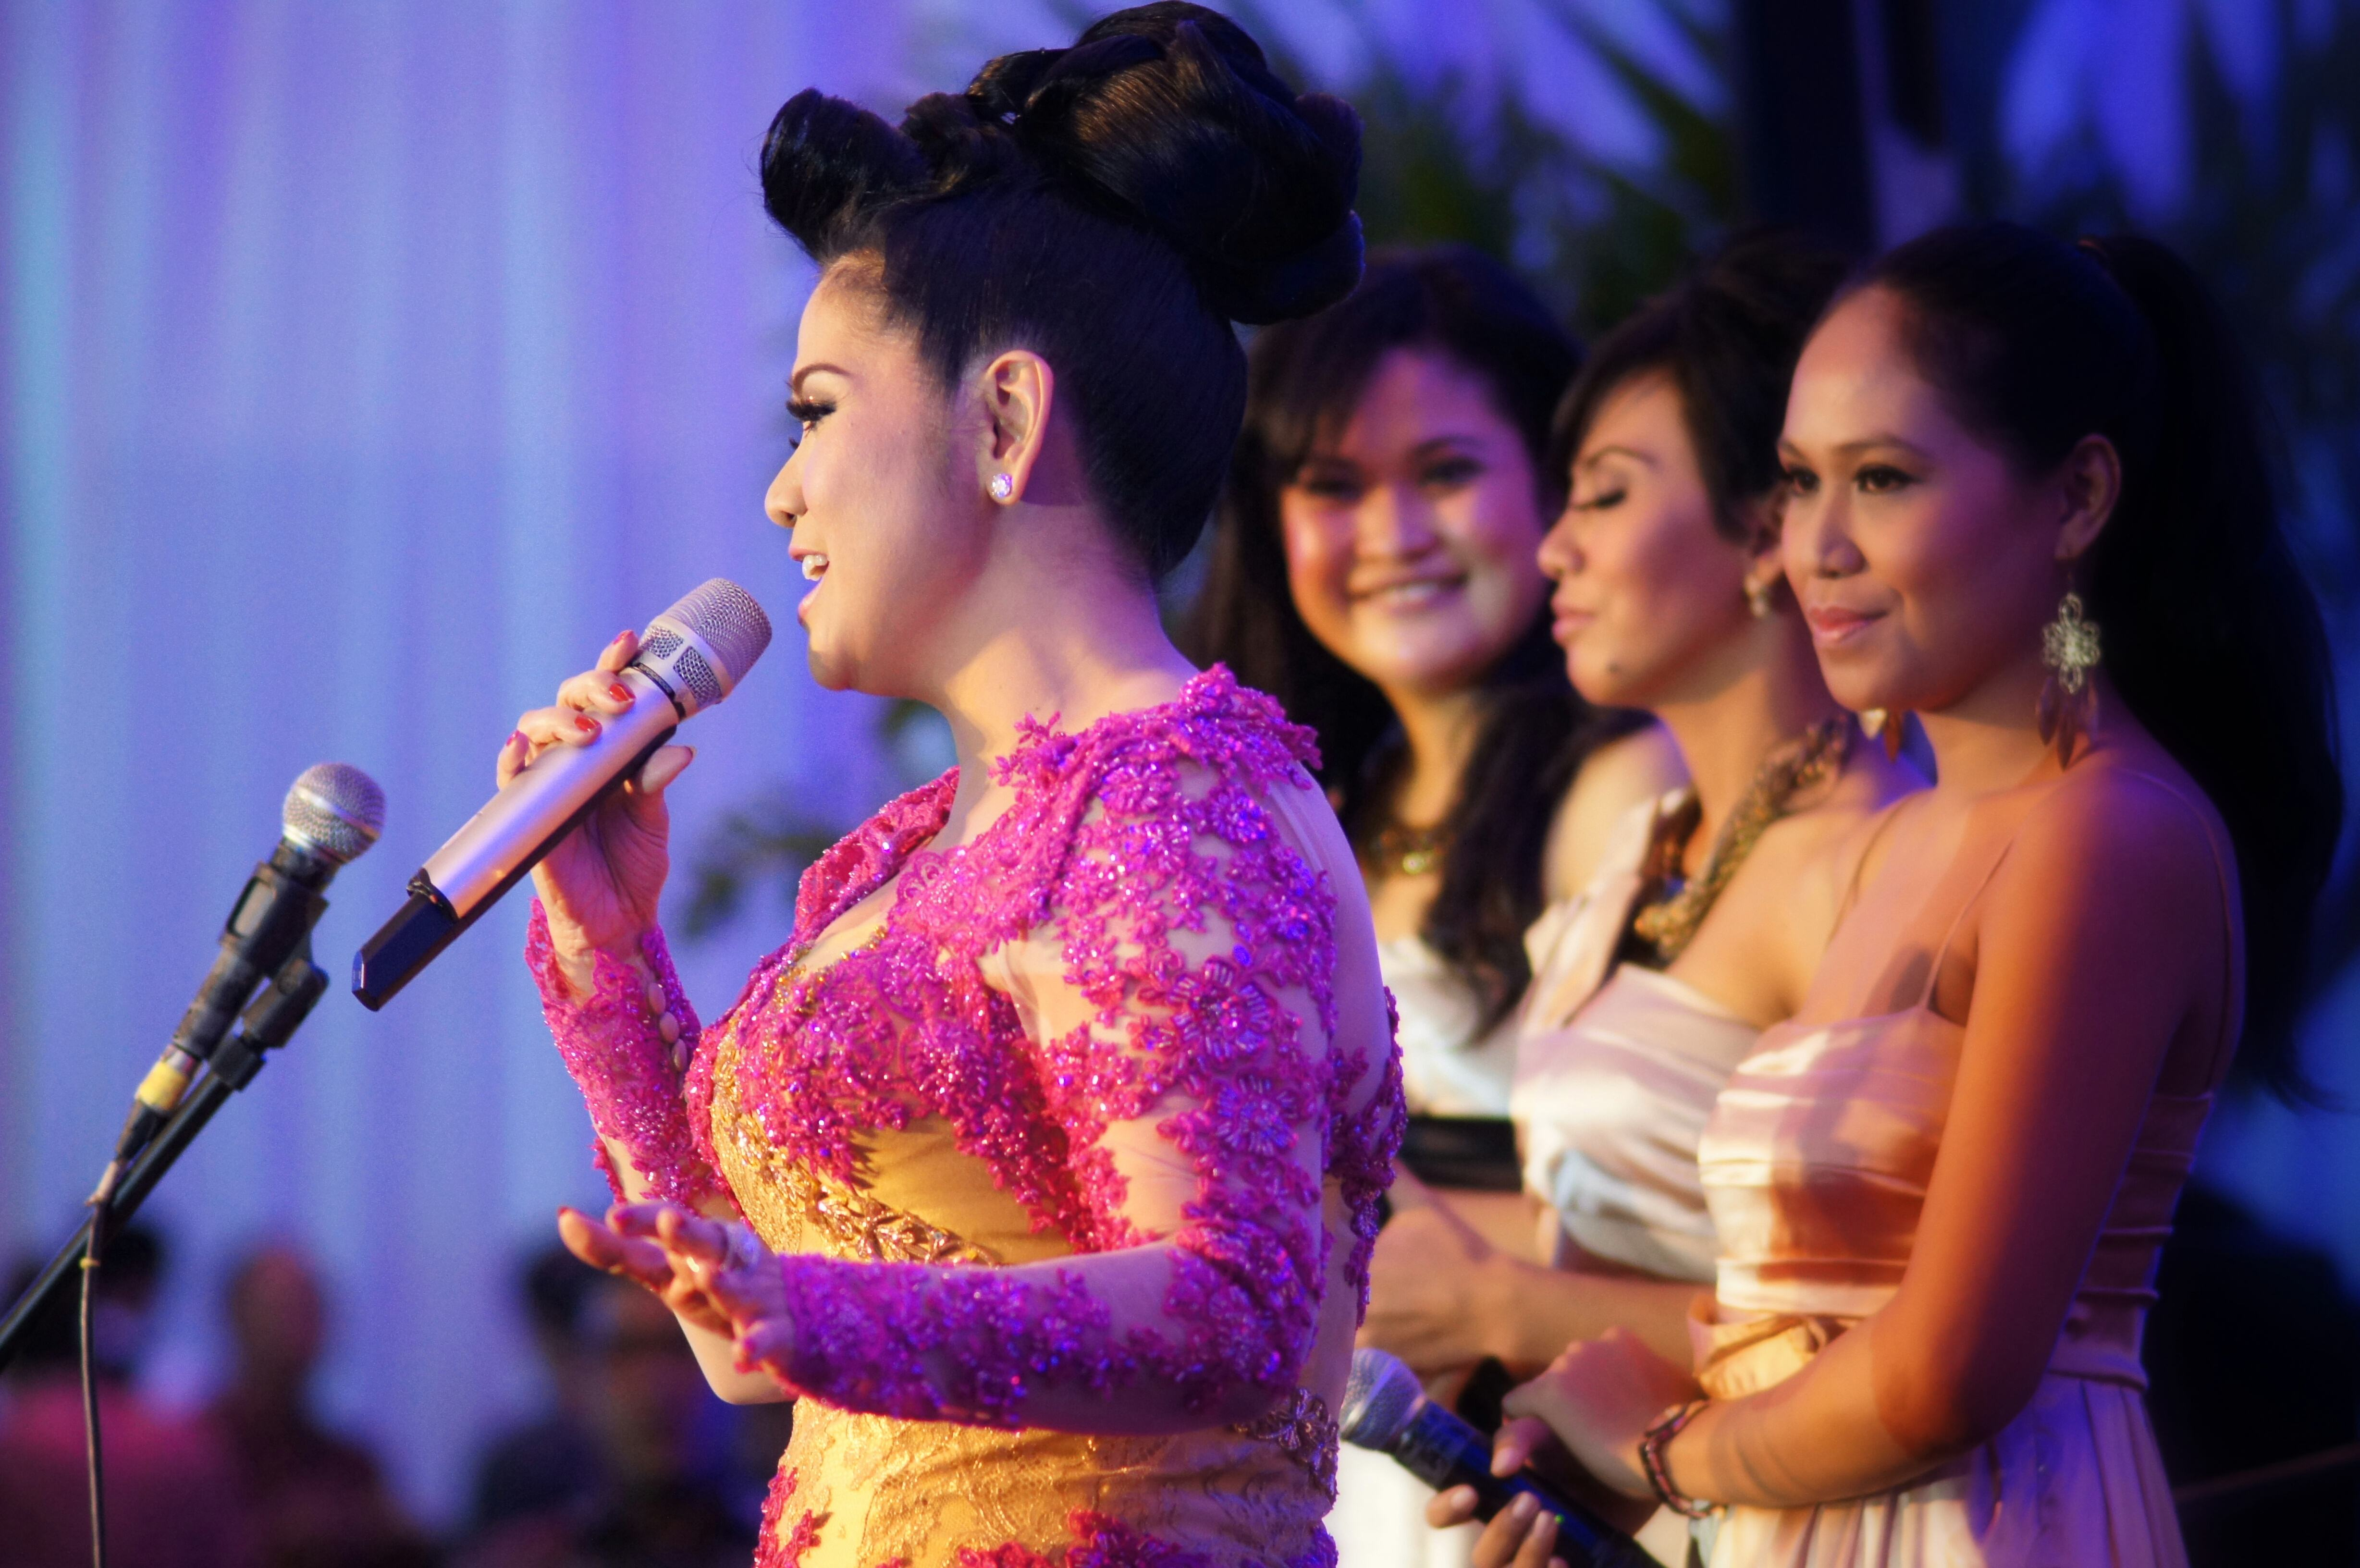 The entertainment for the evening was Indonesian singing legend Vina Panduwinata.